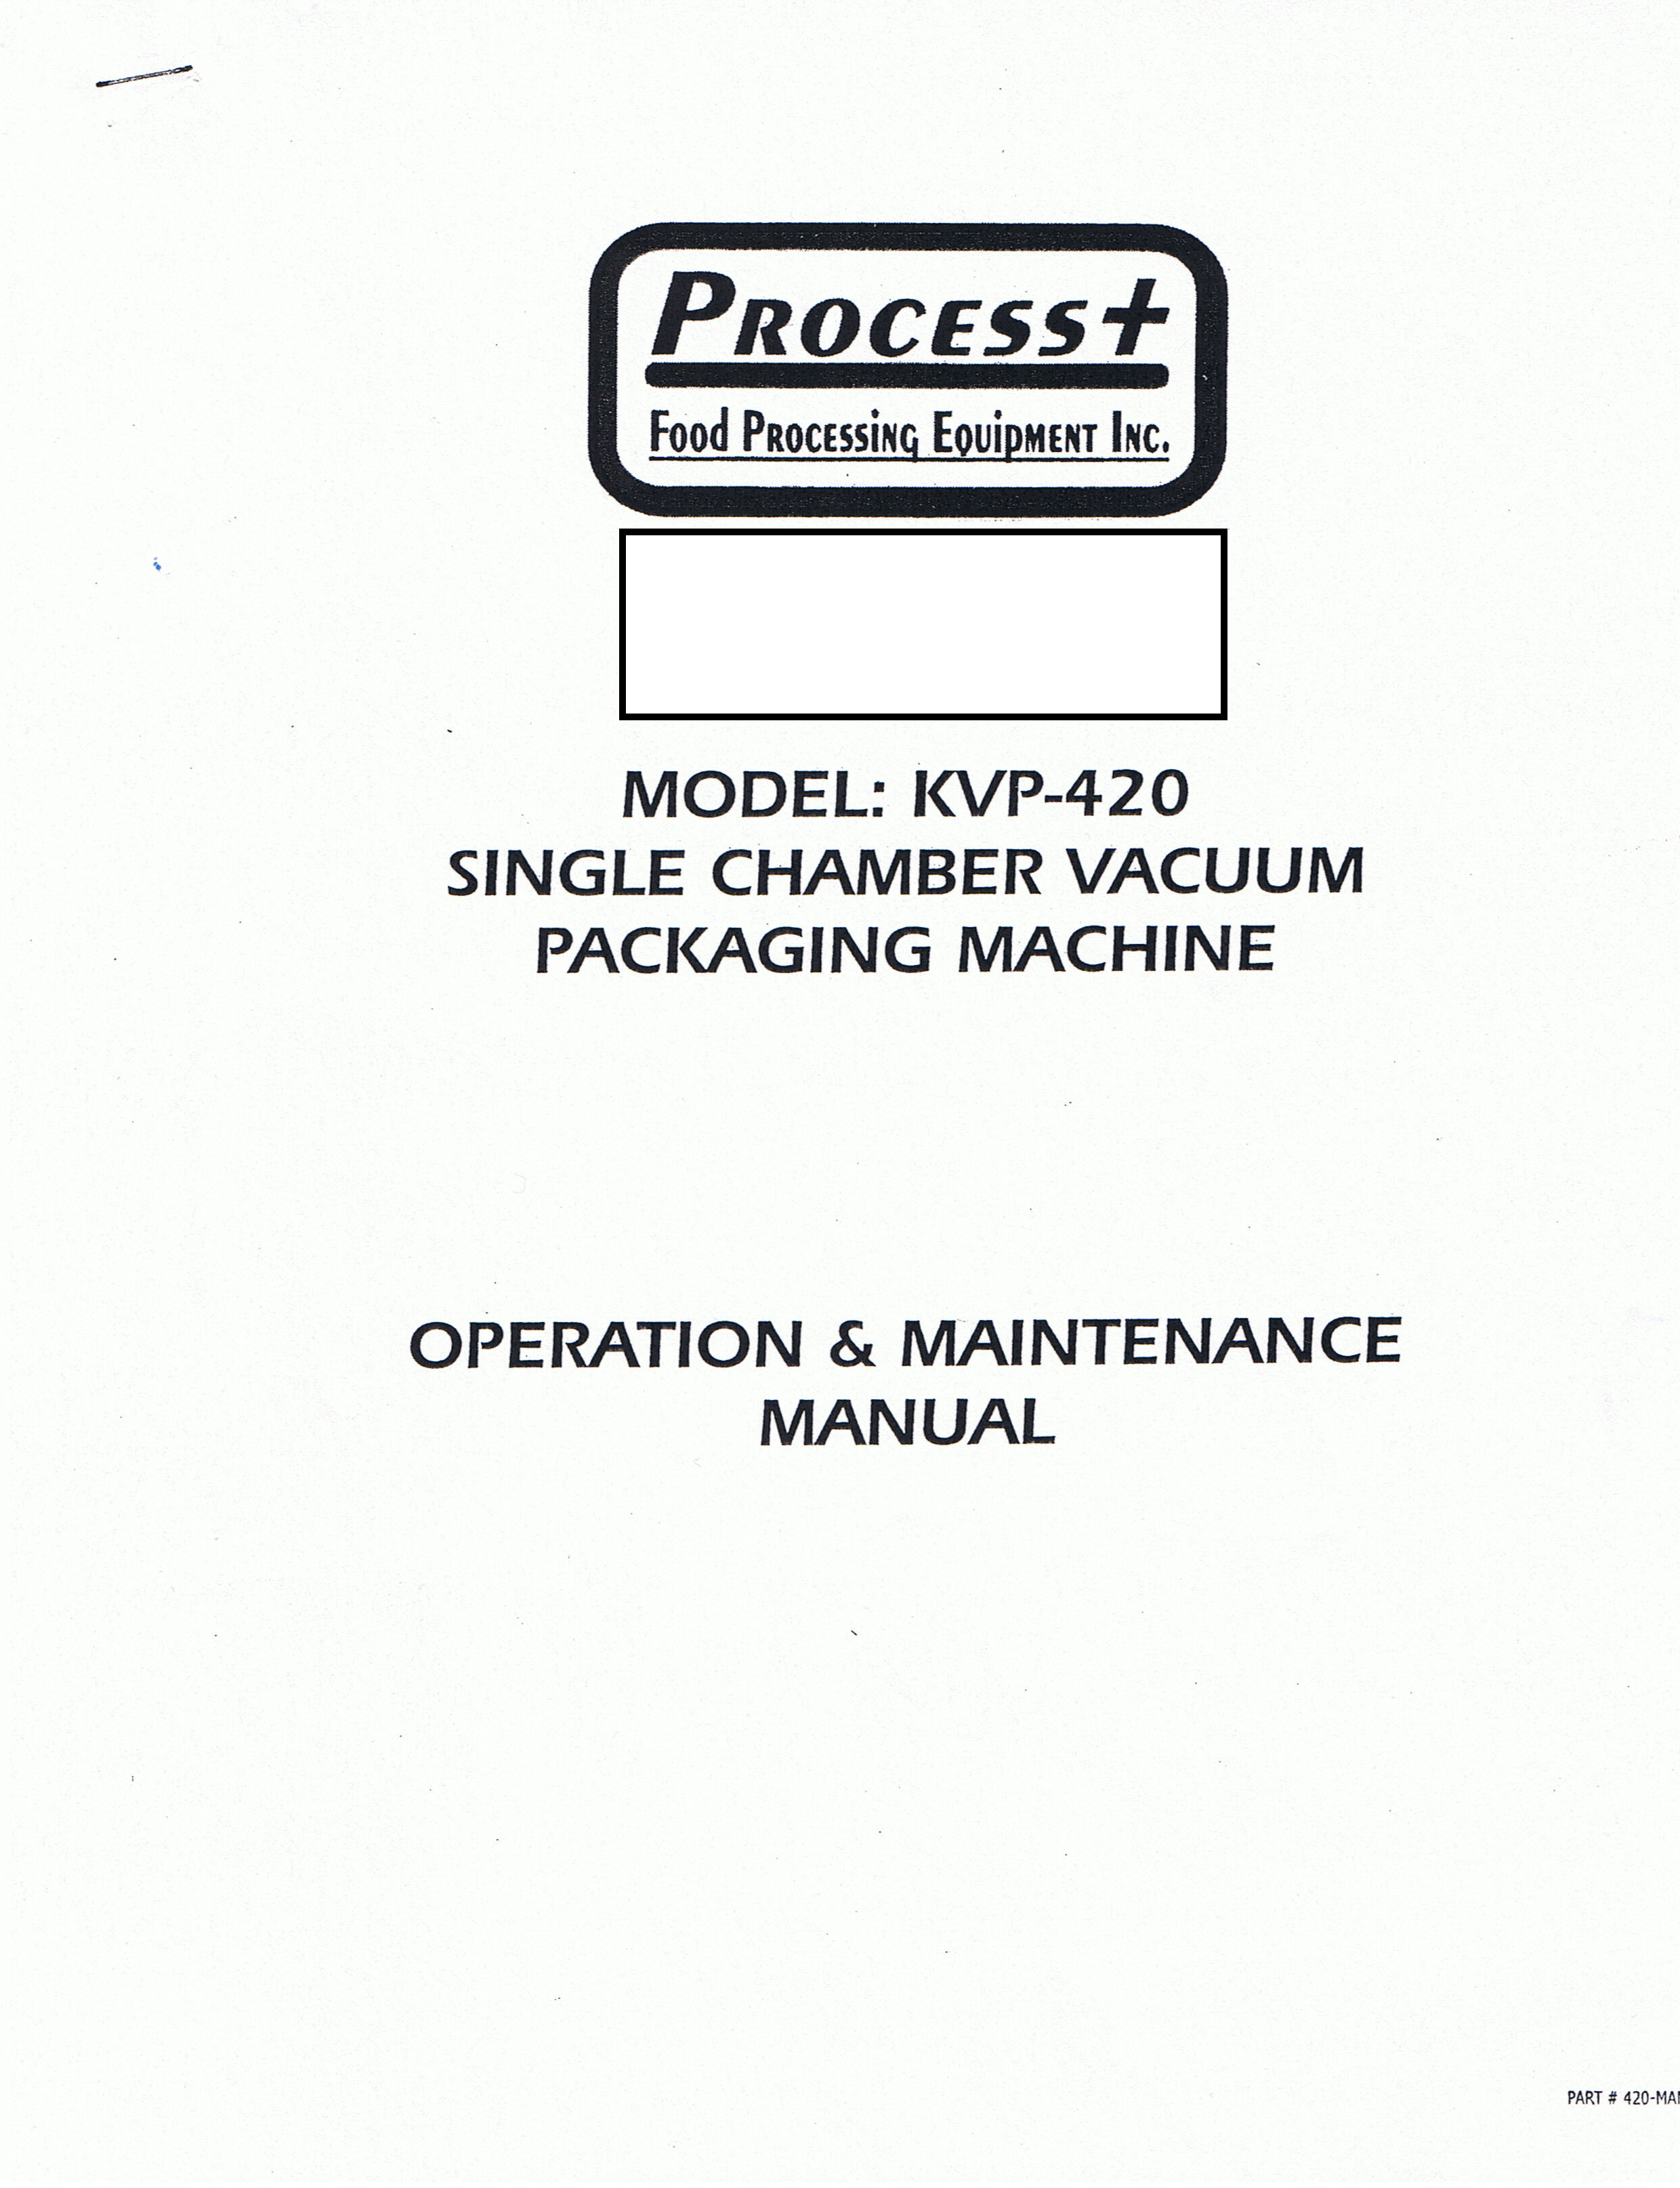 Process + (Process Plus) KVP 420 Vacuum Pack Machine Manual